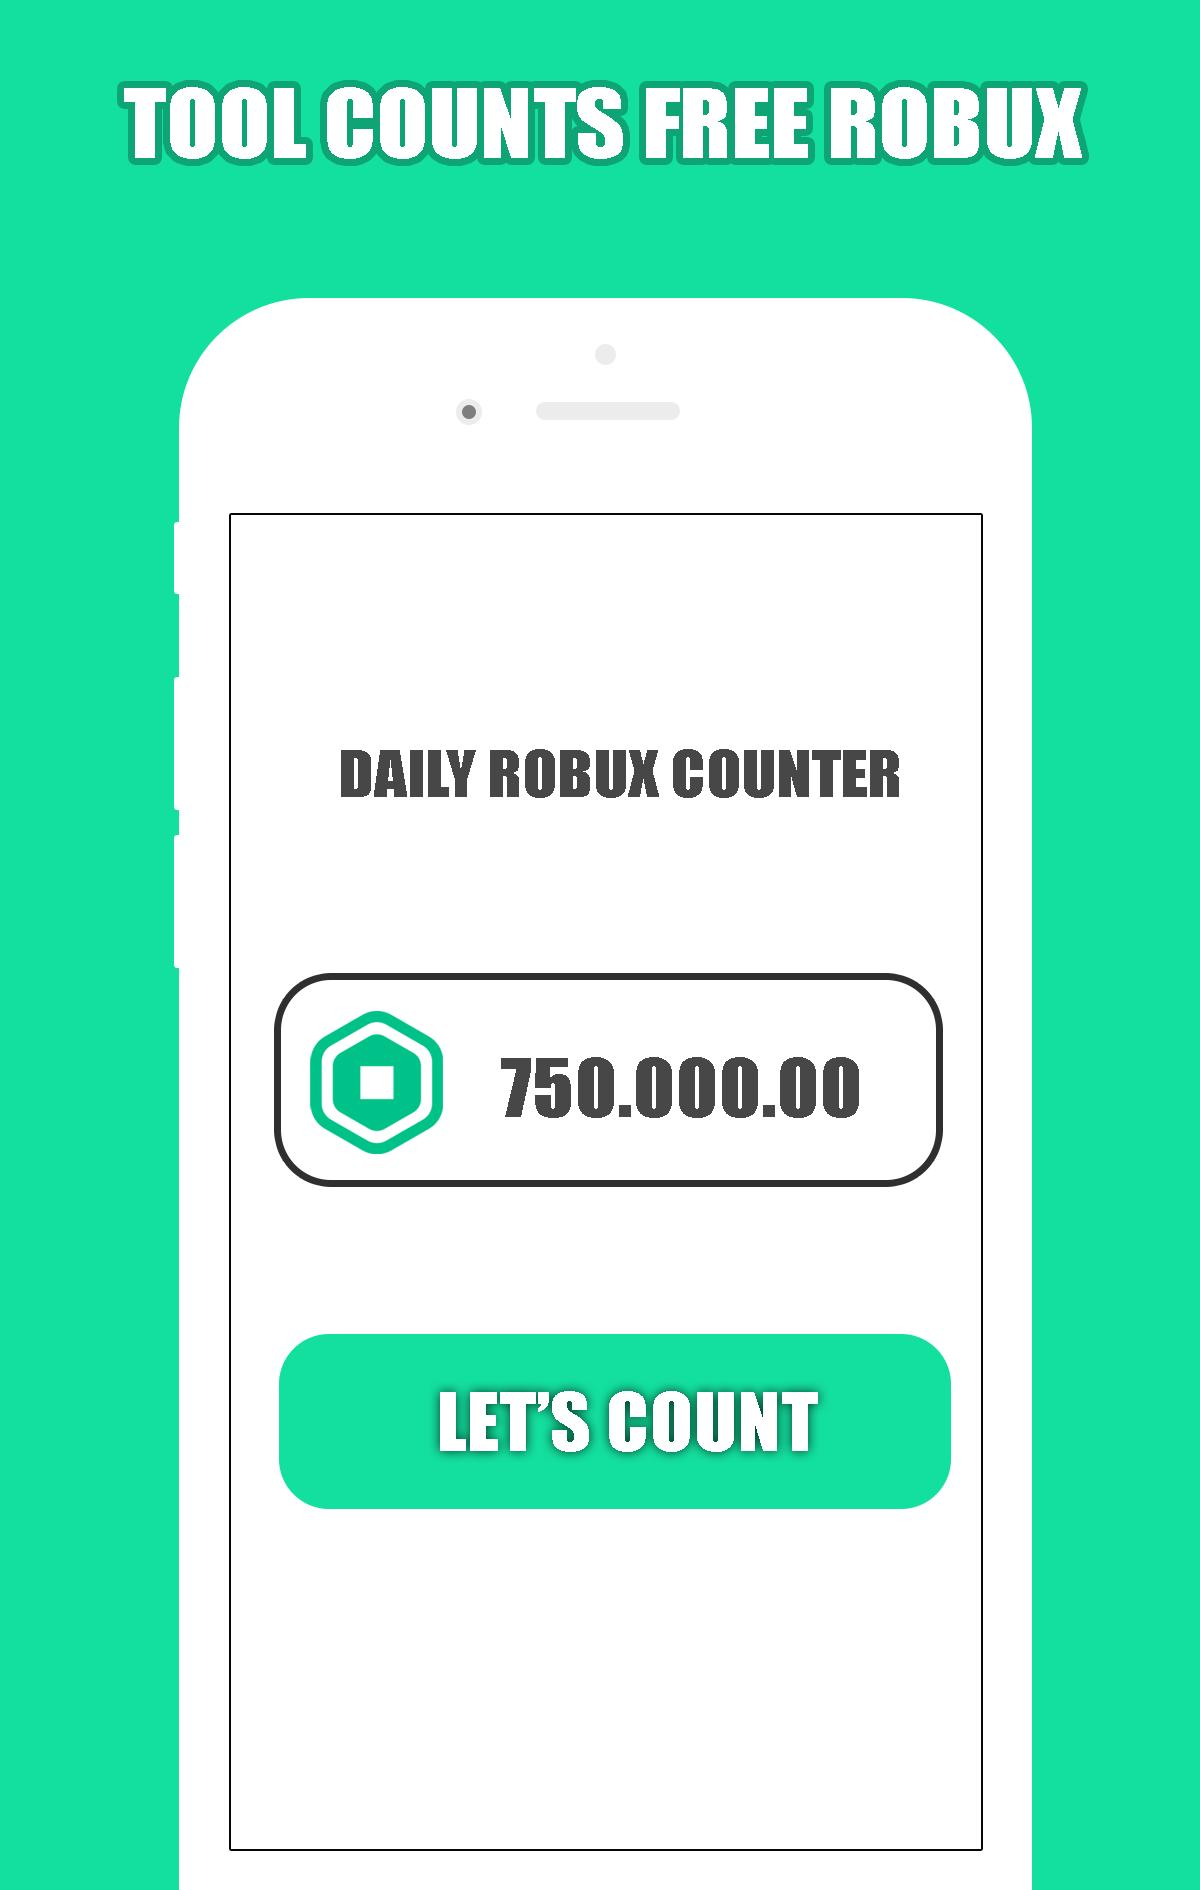 Free Robux Calc Quizz For Roblox 2020 For Android Apk Download Free Robux Counter Free Rbx Calc 2020 For Android Apk Download